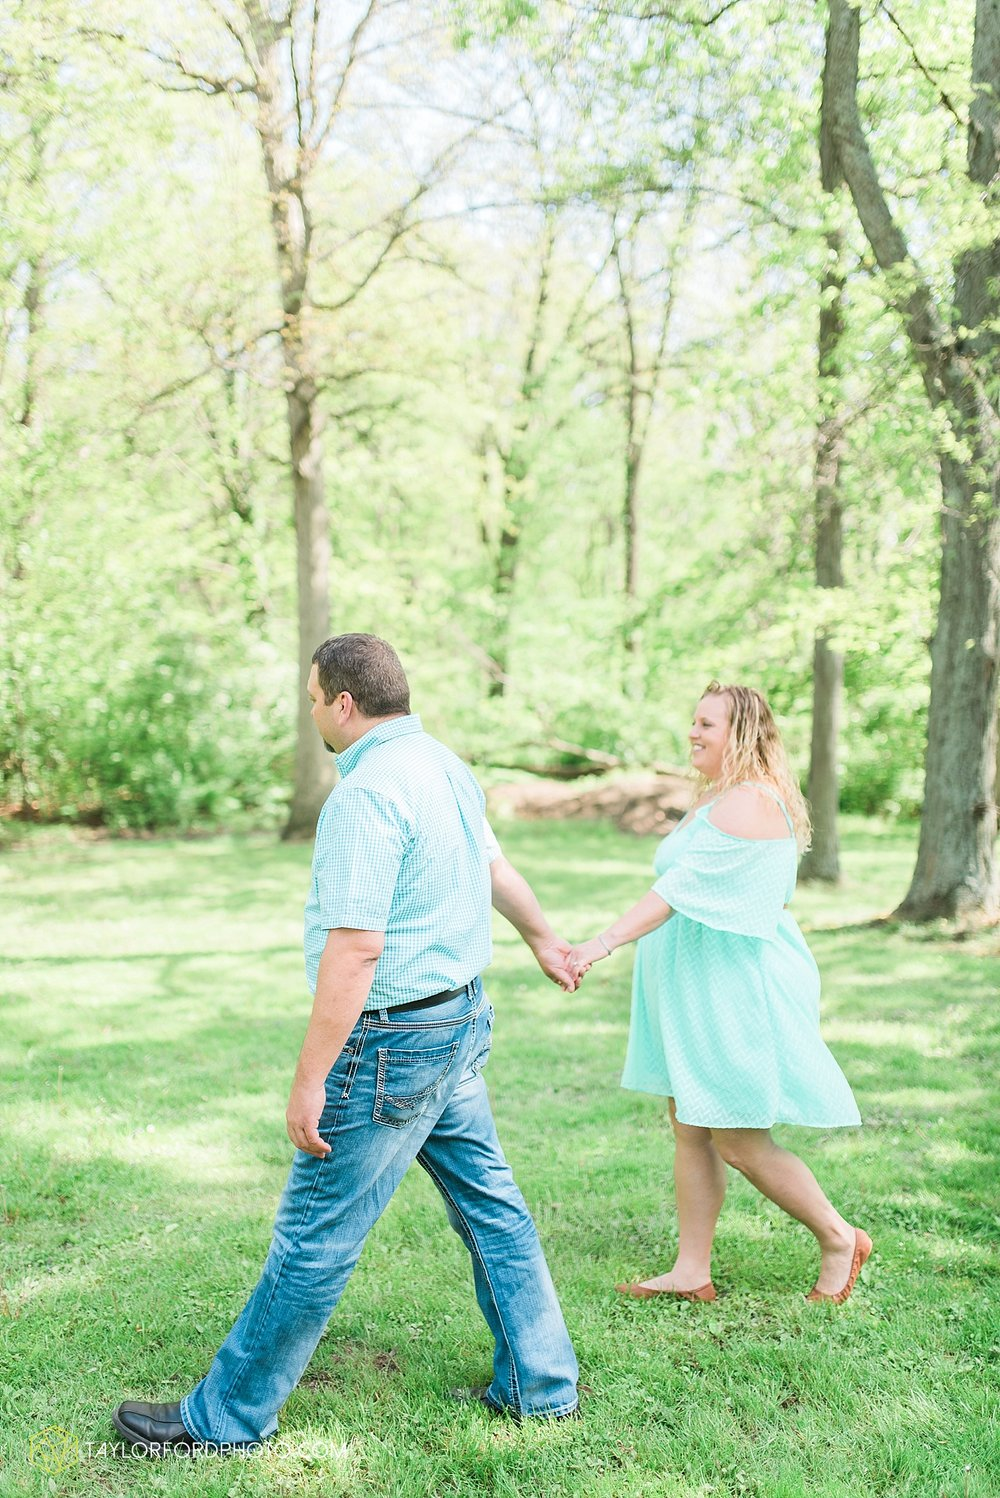 van-wert-lima-northwest-ohio-engagement-wedding-photographer-taylor-ford-photography-willow-bend-golf-course_1824.jpg